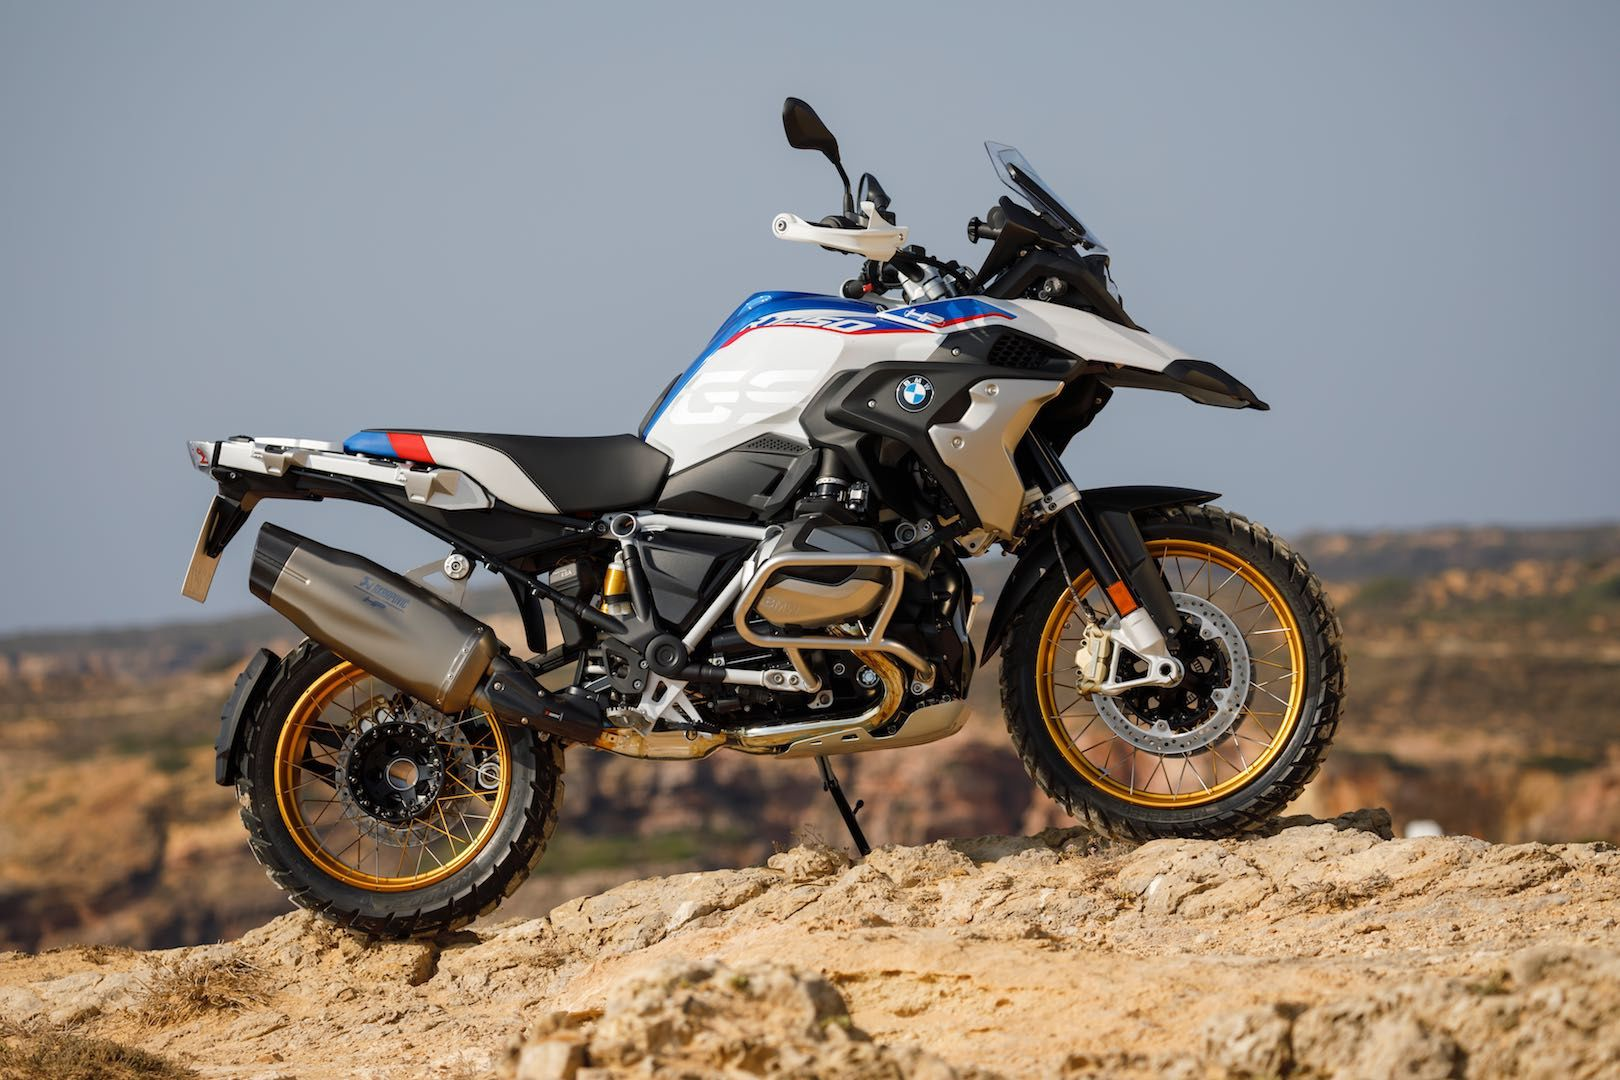 Bmw 1250 Gs 2019 Wallpaper From 2019 Bmw R 1250 Gs Unveiled With